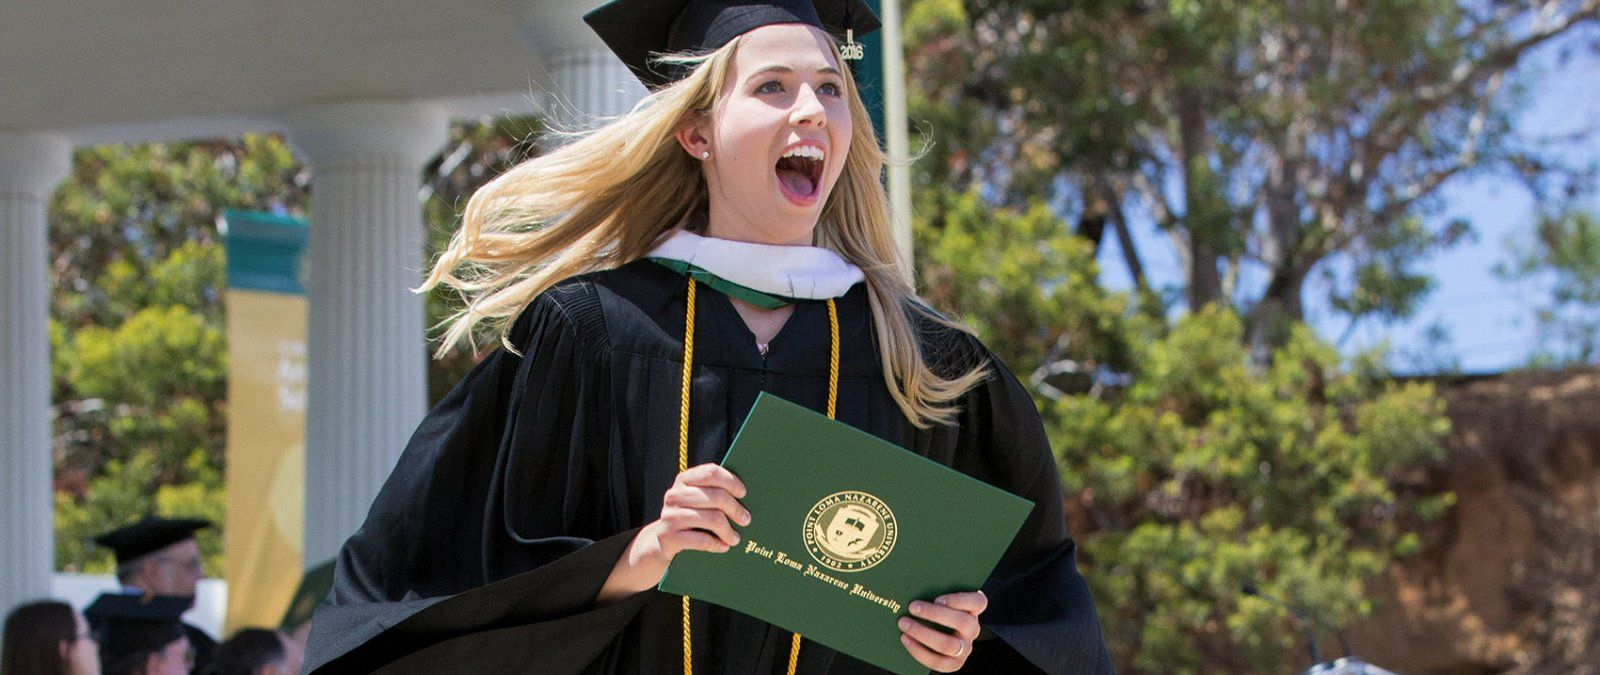 A female PLNU student excitedly smiles to the crowd after receiving her diploma.